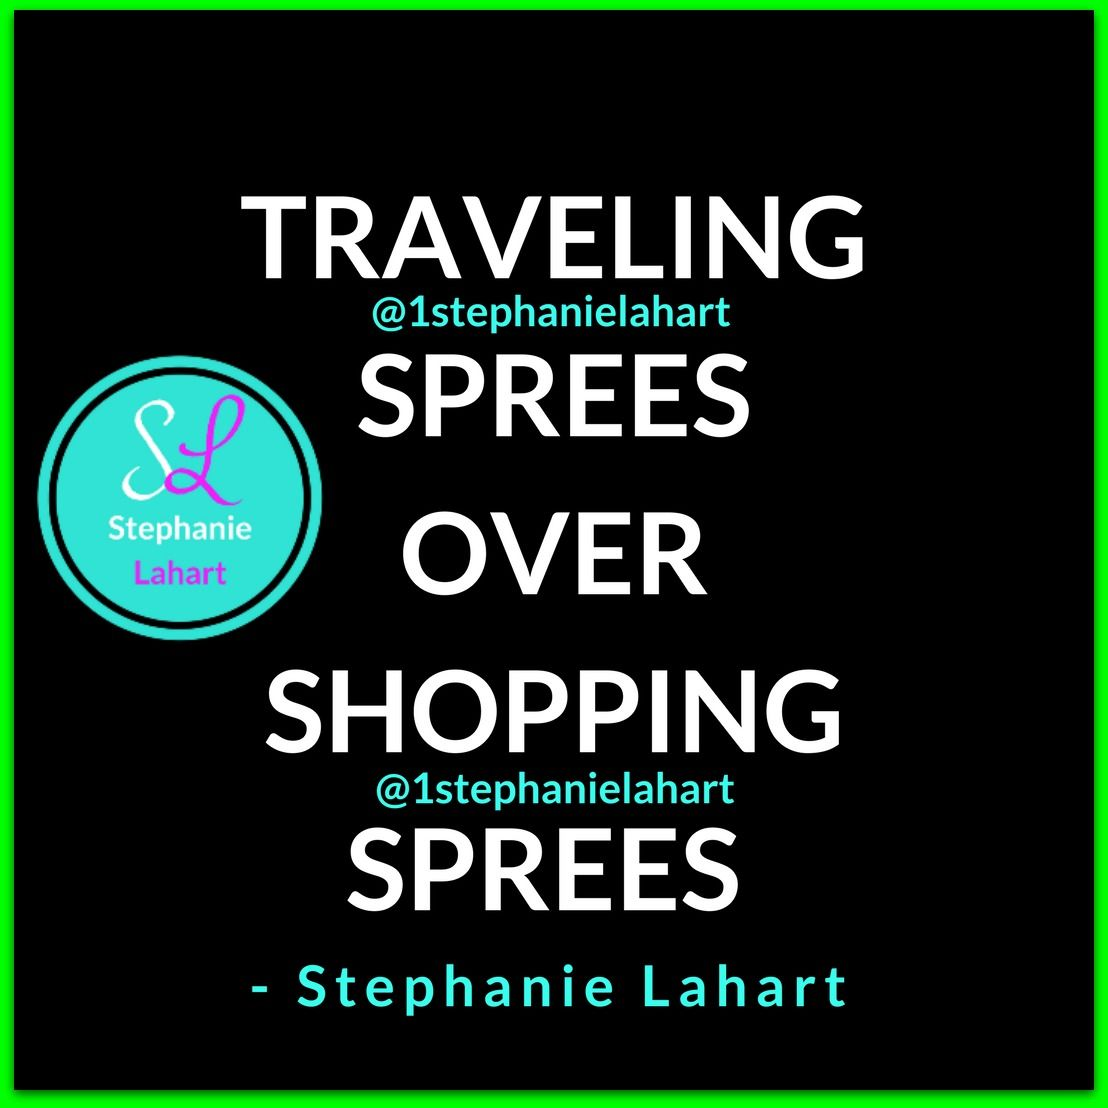 "Quotes By Black Women Traveling Quotes Black Girls And Black Women""traveling Sprees"